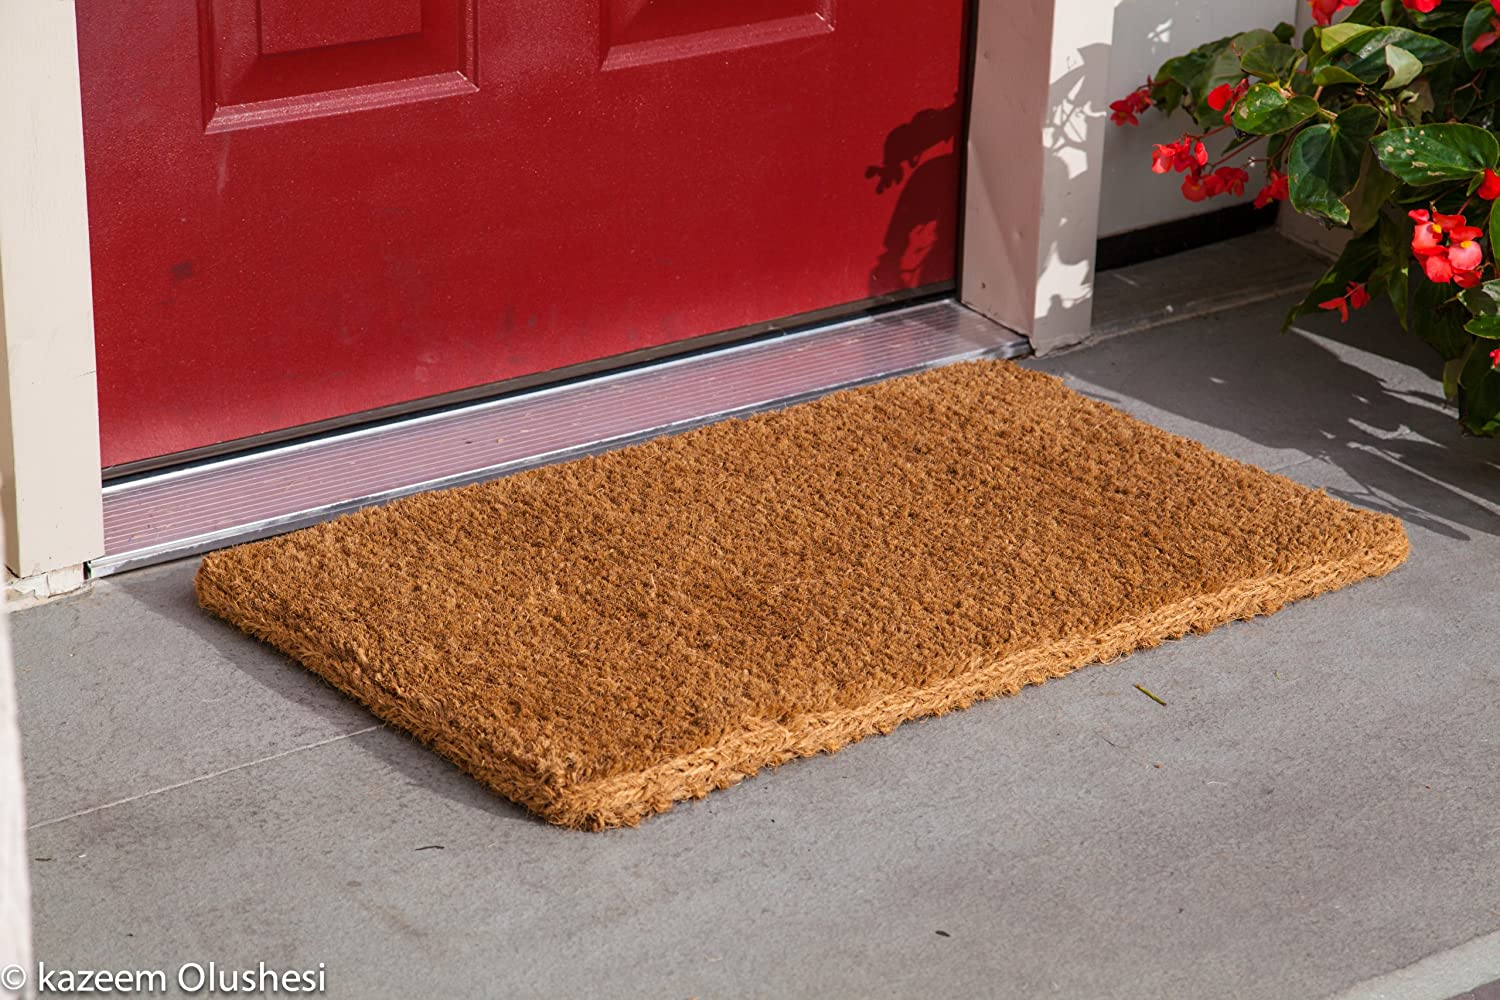 Kempf Natural Coco Coir Doormat 18 By 30 By 1 Inch New